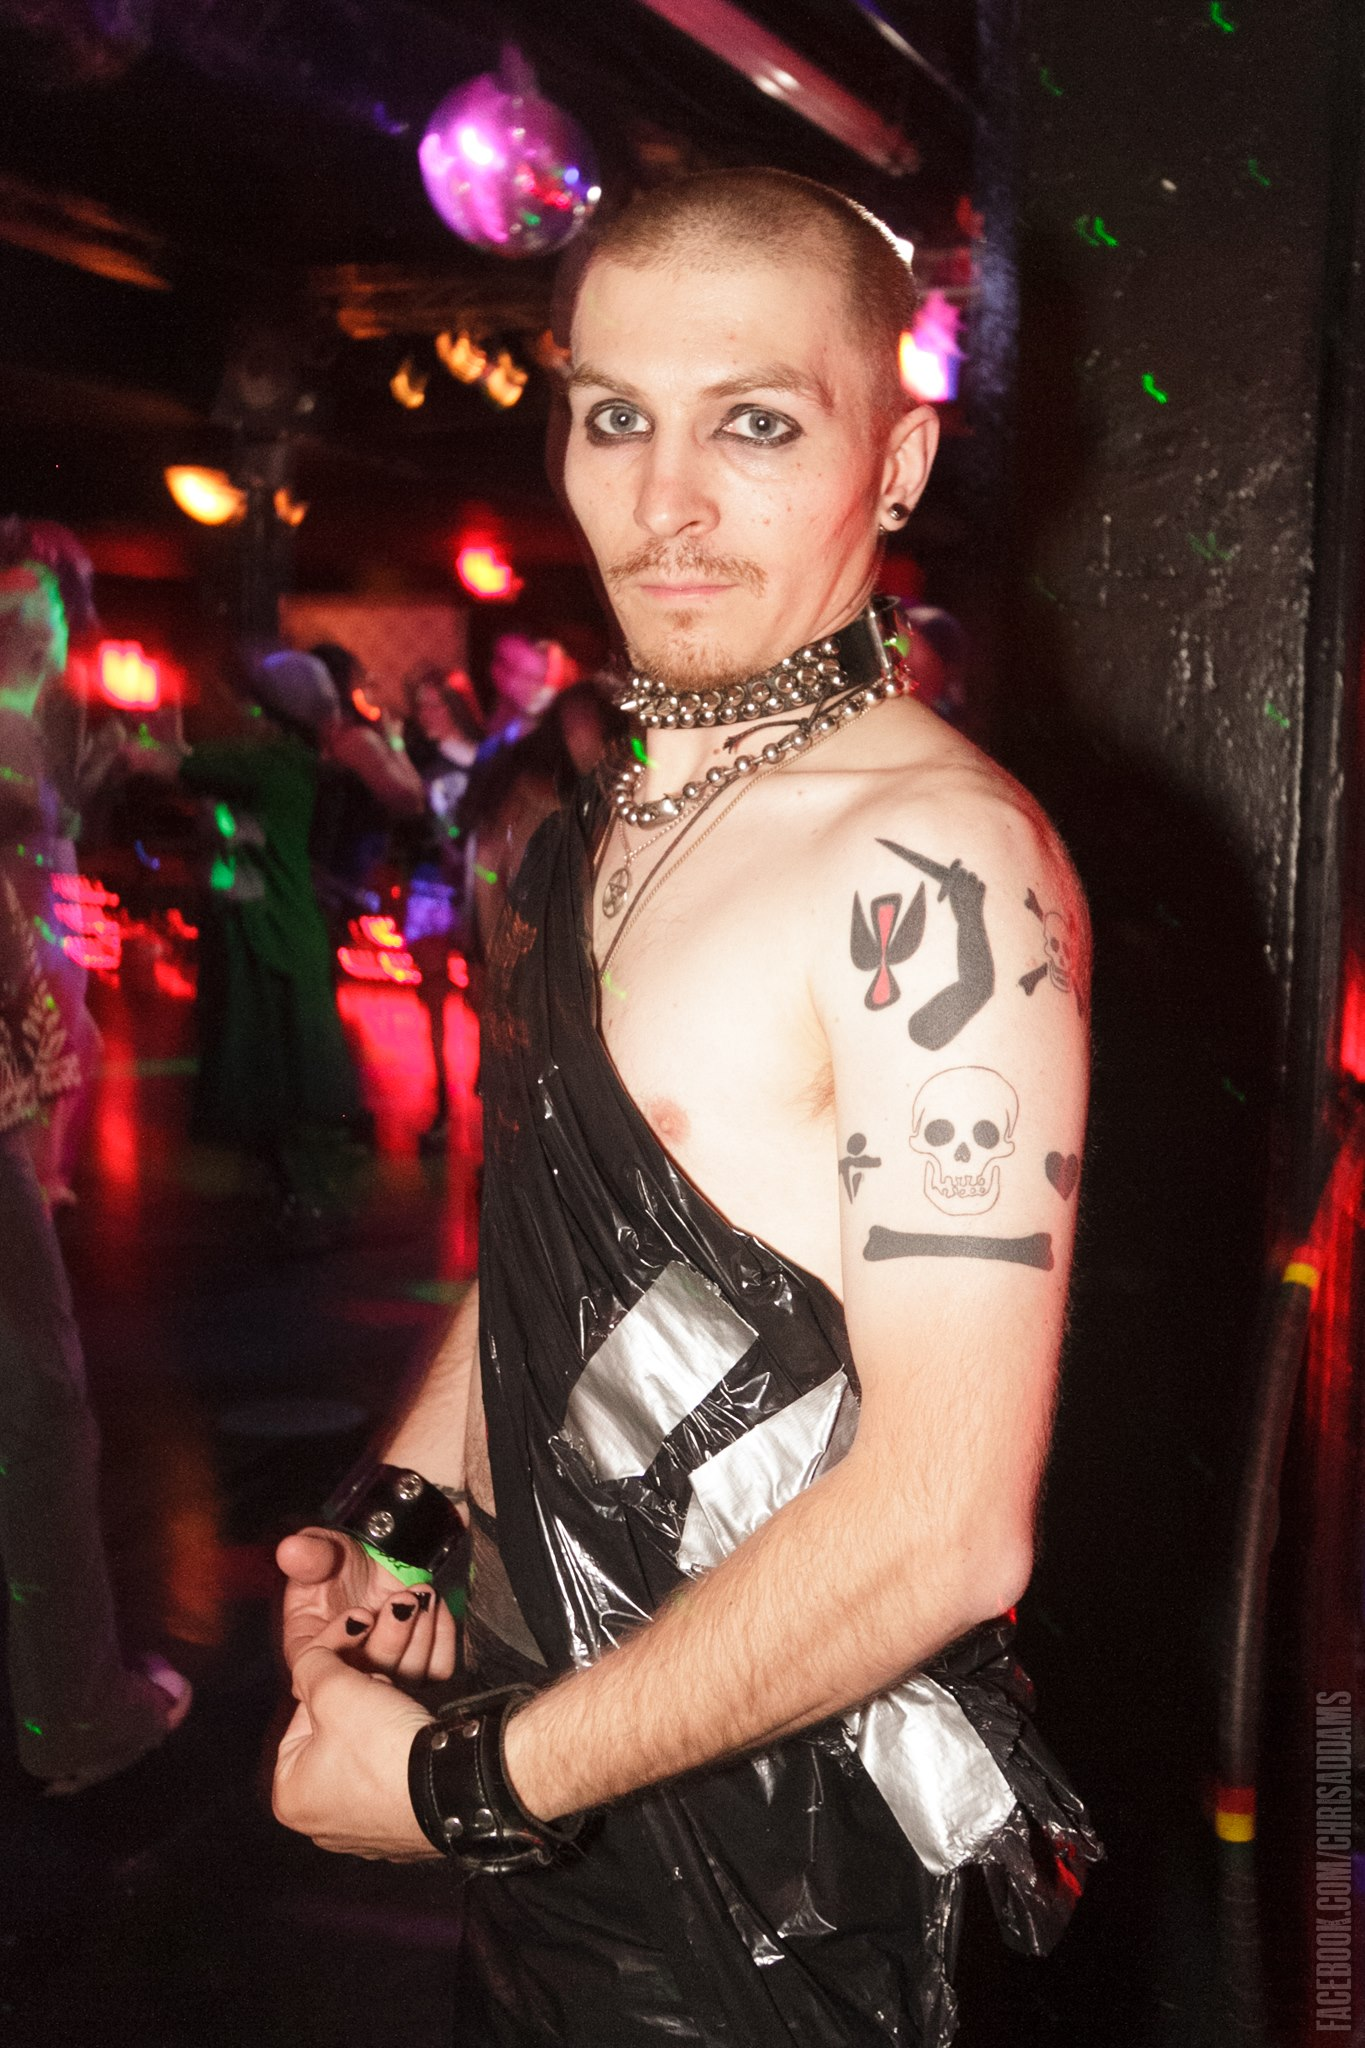 TheHavenClub-Goth-Industrial-Dance-Alternative-Northampton-MA (1).jpg